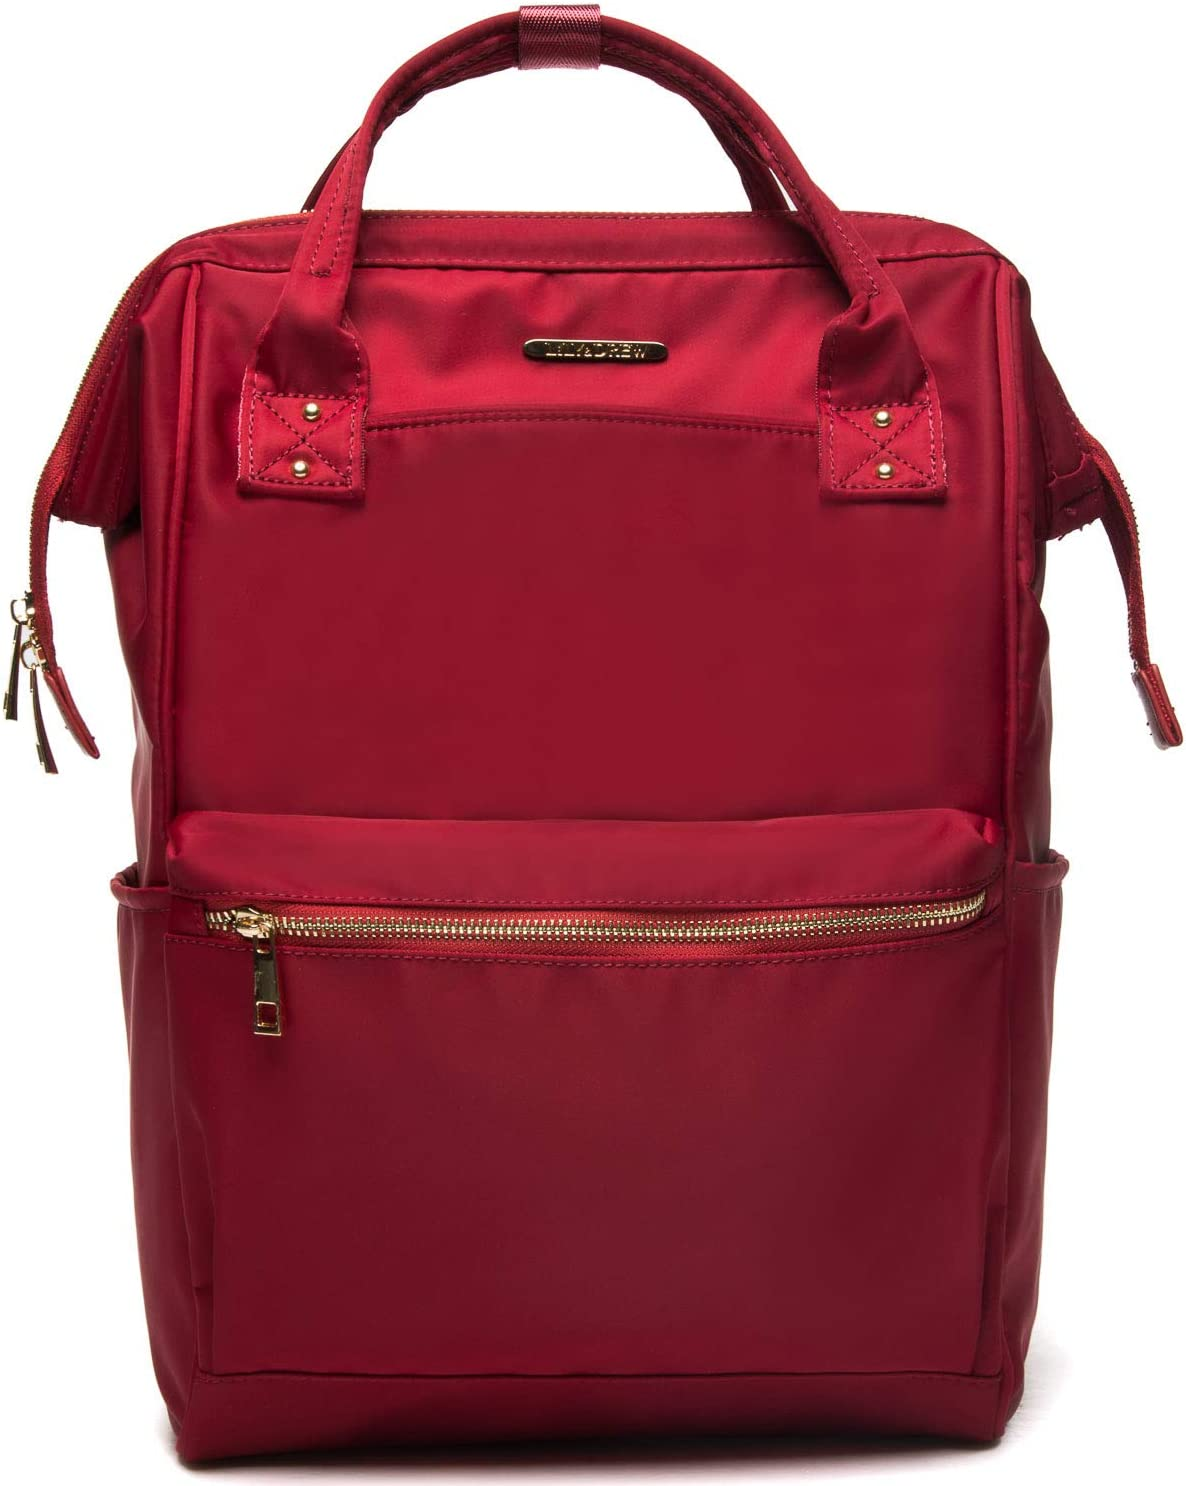 Lily & Drew Casual Travel Daypack School Backpack for Men Women and 14 Inch Laptop Computer, with Wide Doctor Style Top Opening (Red Nylon Medium)